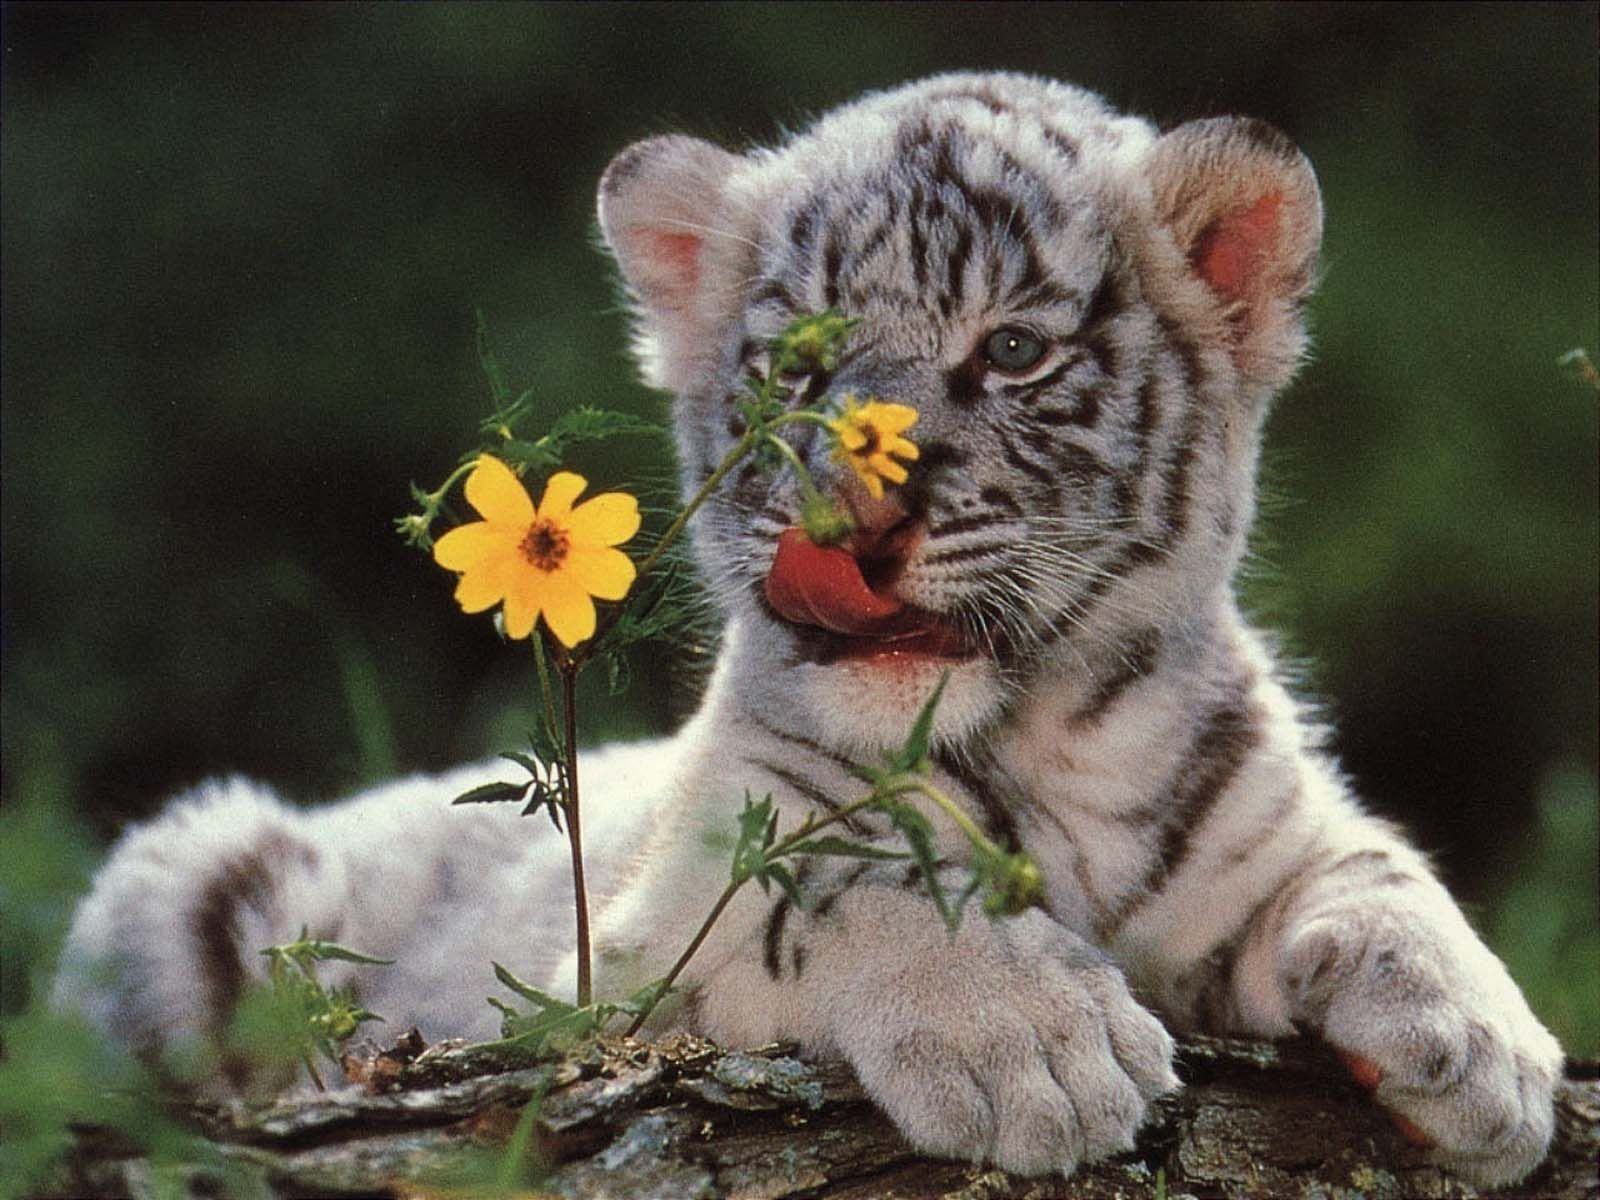 Baby White Tigers Wallpapers 2013 Wallpapers Cute Baby Animals Cute Animals Baby Animals